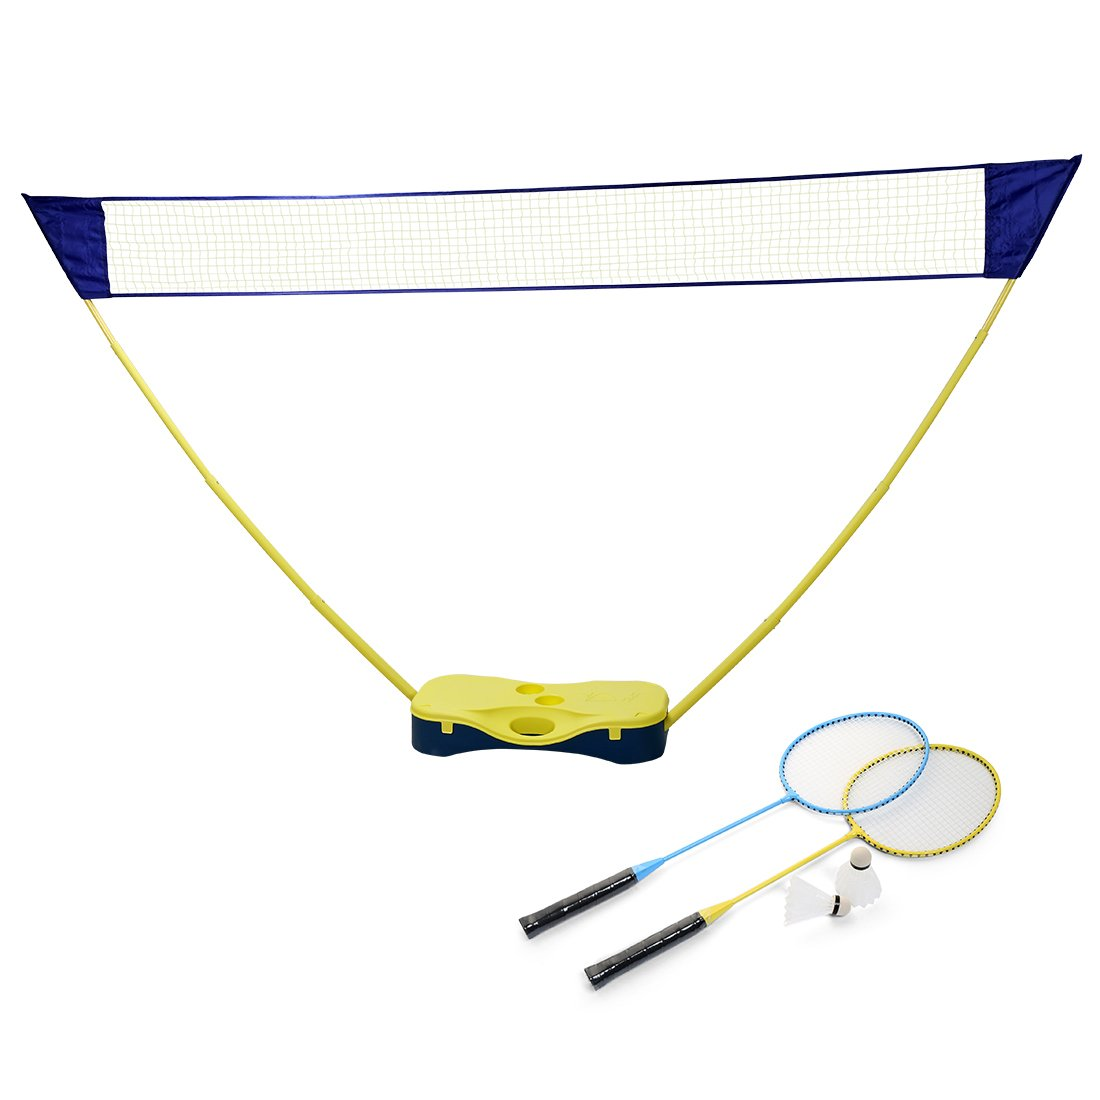 Jack's household Portable Volleyball Badminton Set with Net and Stand Perfect for Garden, Camping, Beach Jack' s household